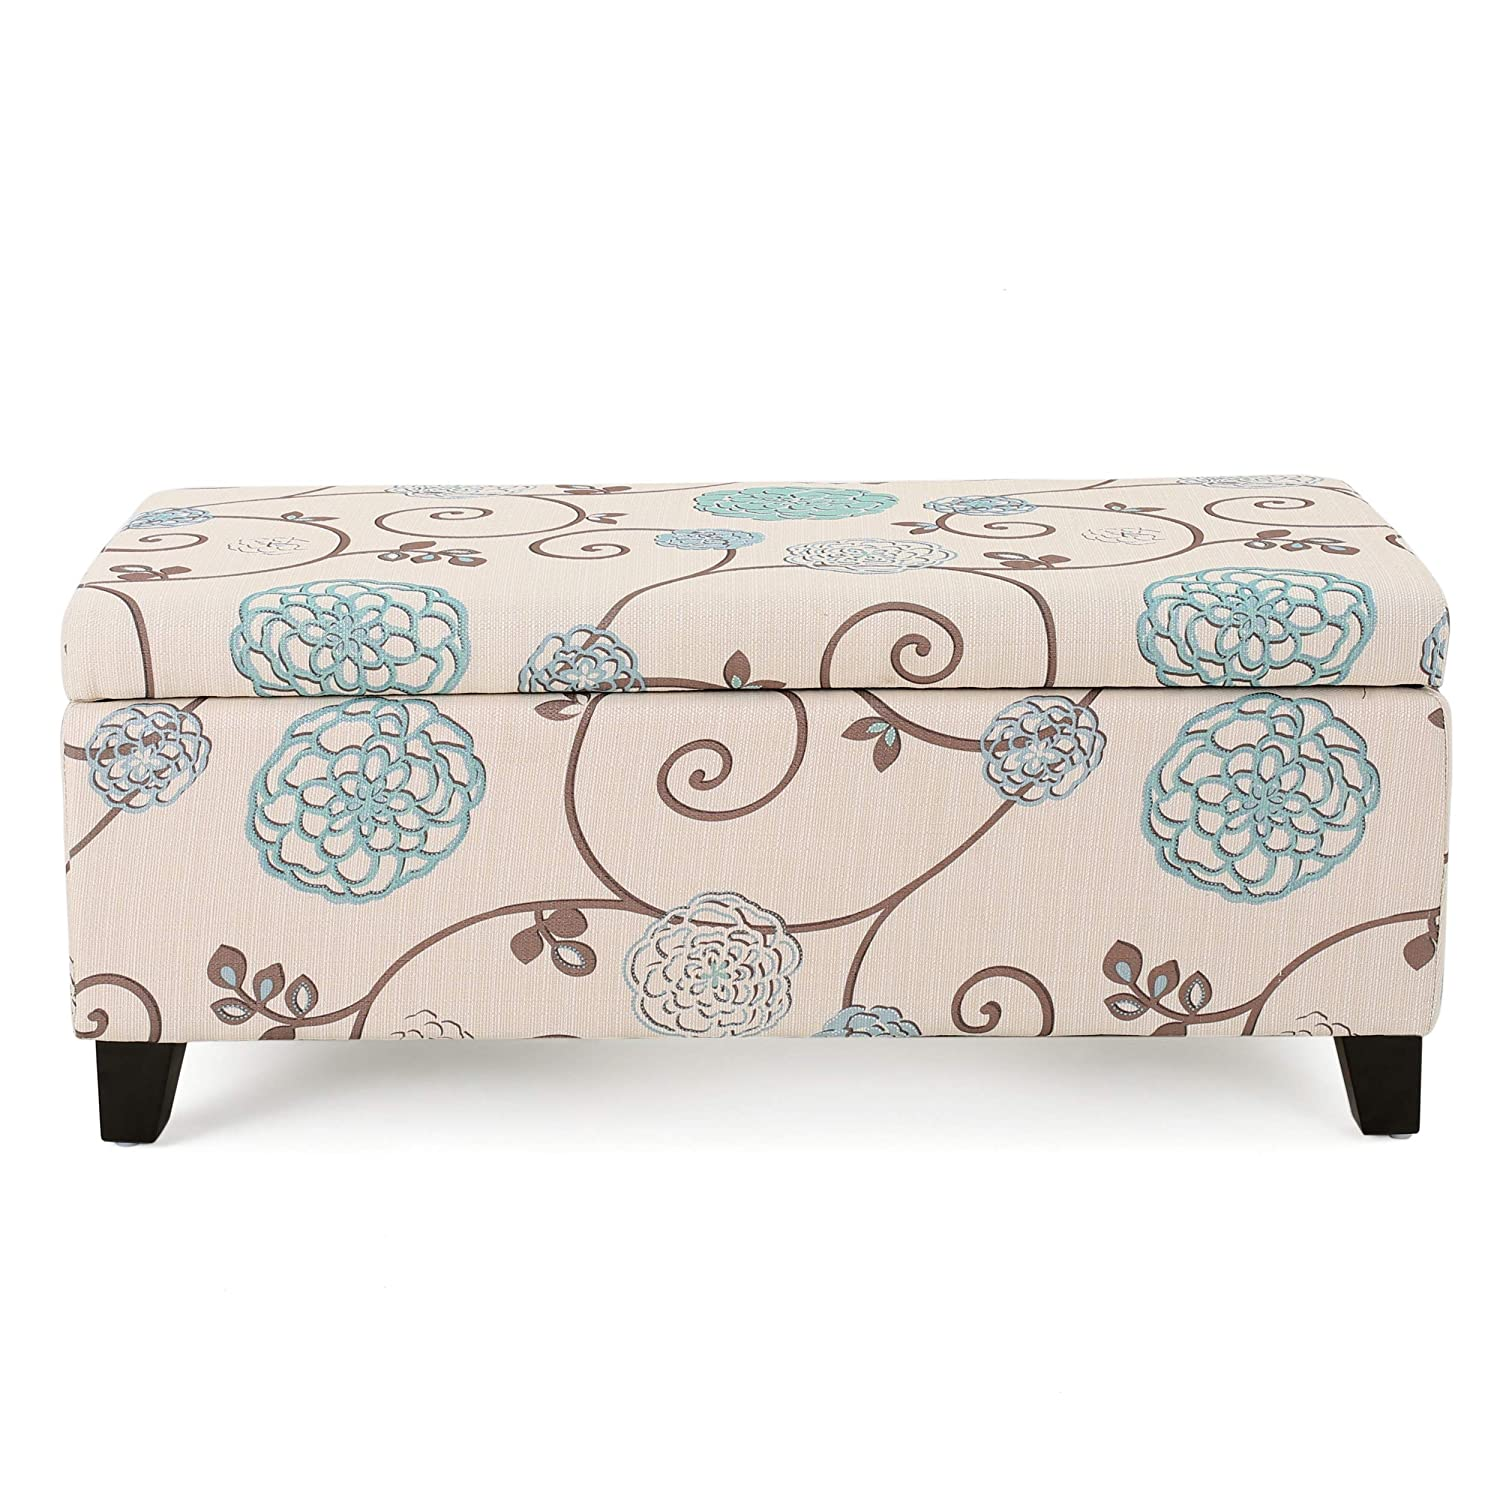 Strange Christopher Knight Home Living Brenway Pattern Fabric Storage Ottoman 19 00L X 38 50W X 16 00H White And Blue Floral Gmtry Best Dining Table And Chair Ideas Images Gmtryco